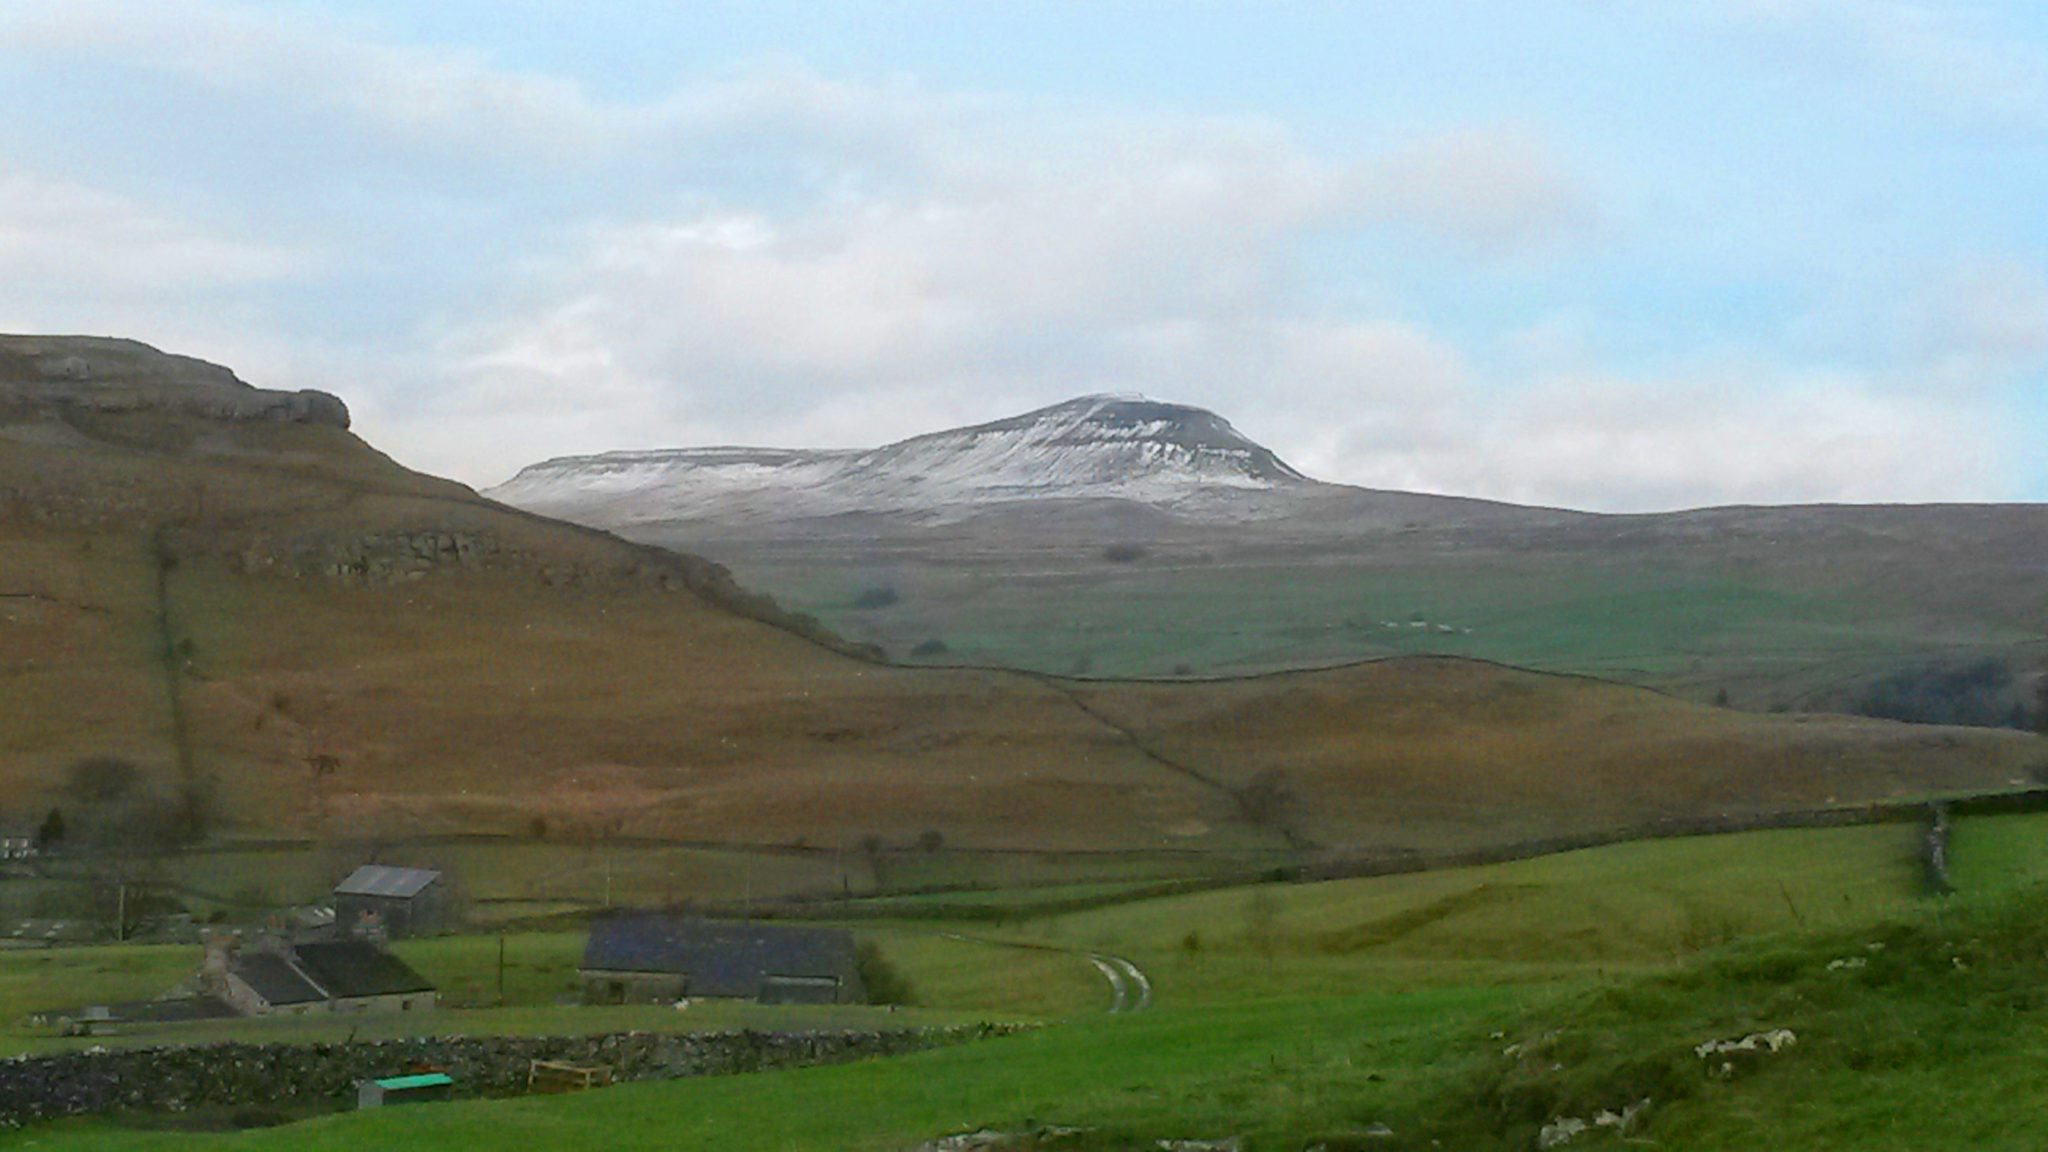 The iconic hill Penyghent, in the Yorkshire Dales. Photo: Tony Brocklebank